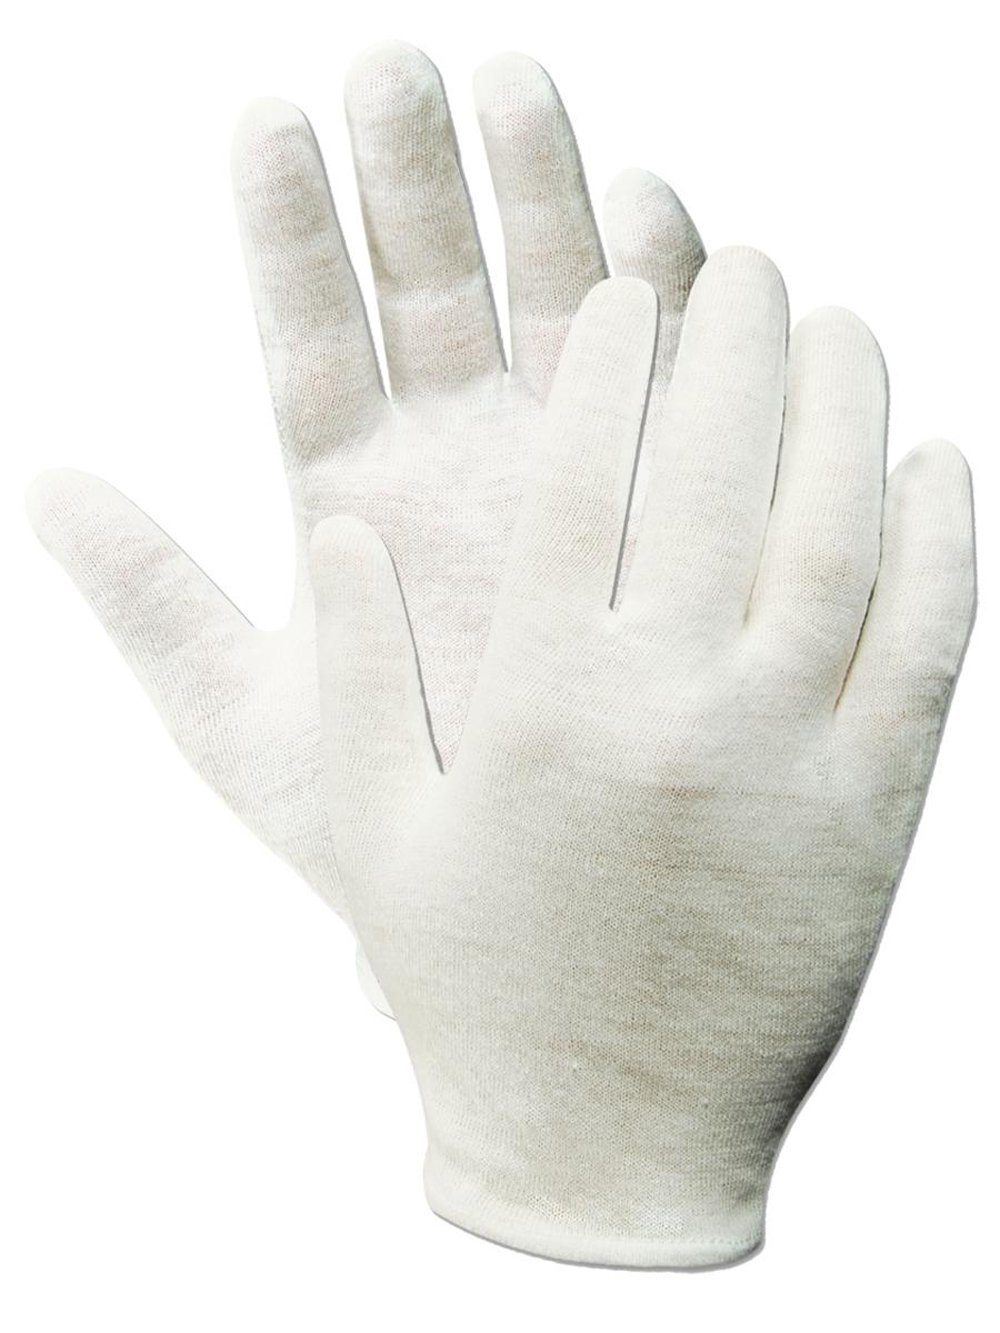 Magid TouchMaster 660H661H Cotton Inspection Glove, Men's (Pack of 48 Pairs) by Magid Glove & Safety B004THN5NE